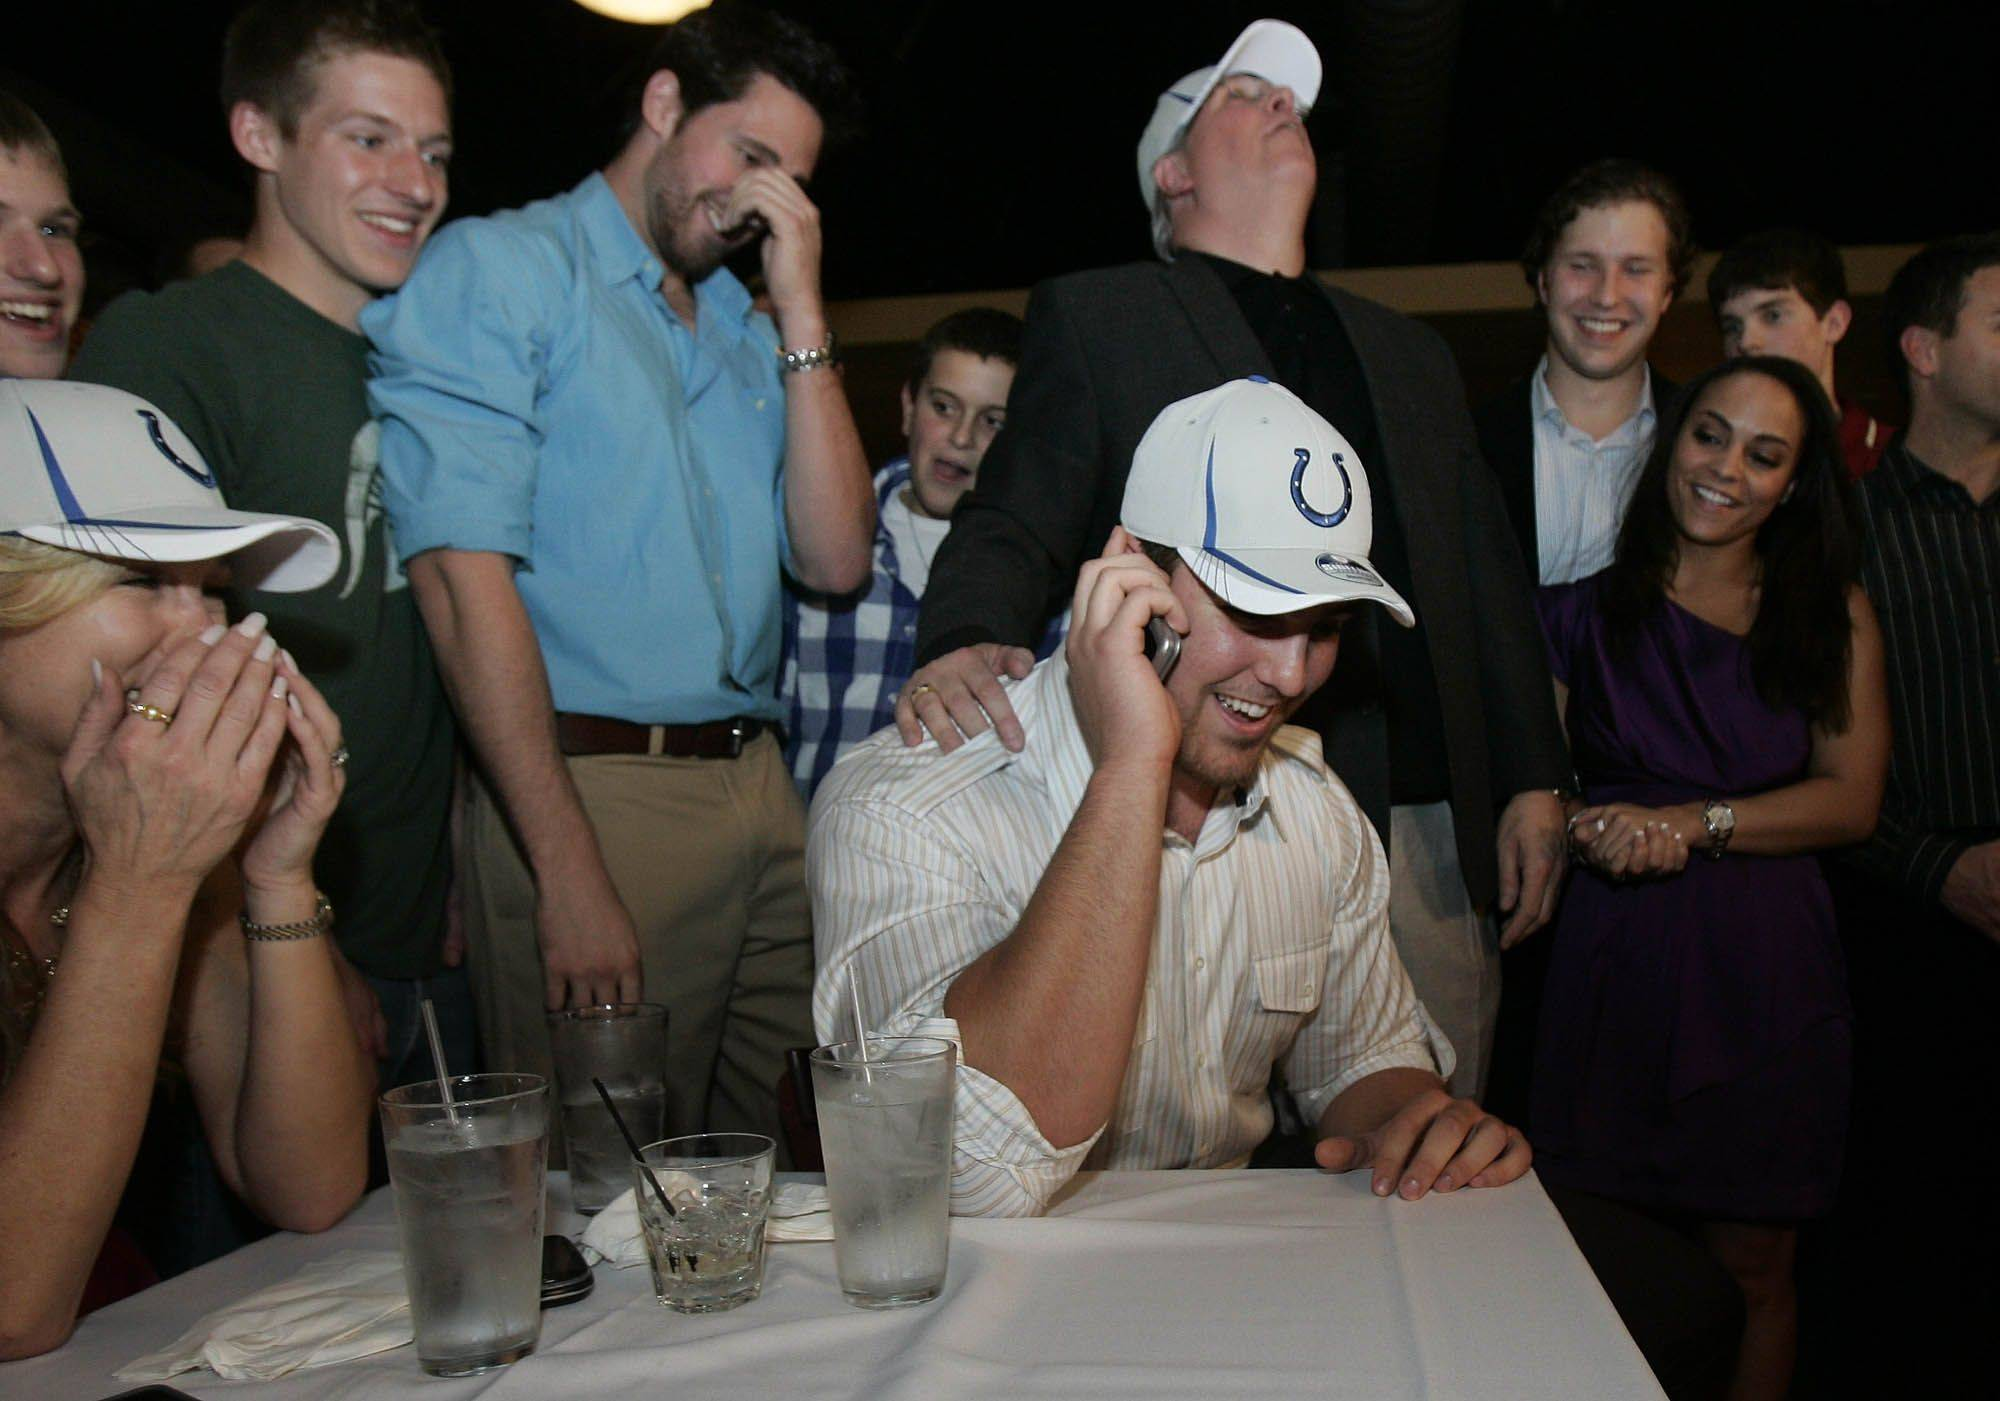 Anthony Castonzo dons a Colts caps after being selected by Indianapolis in the first round of the NFL draft Thursday night.